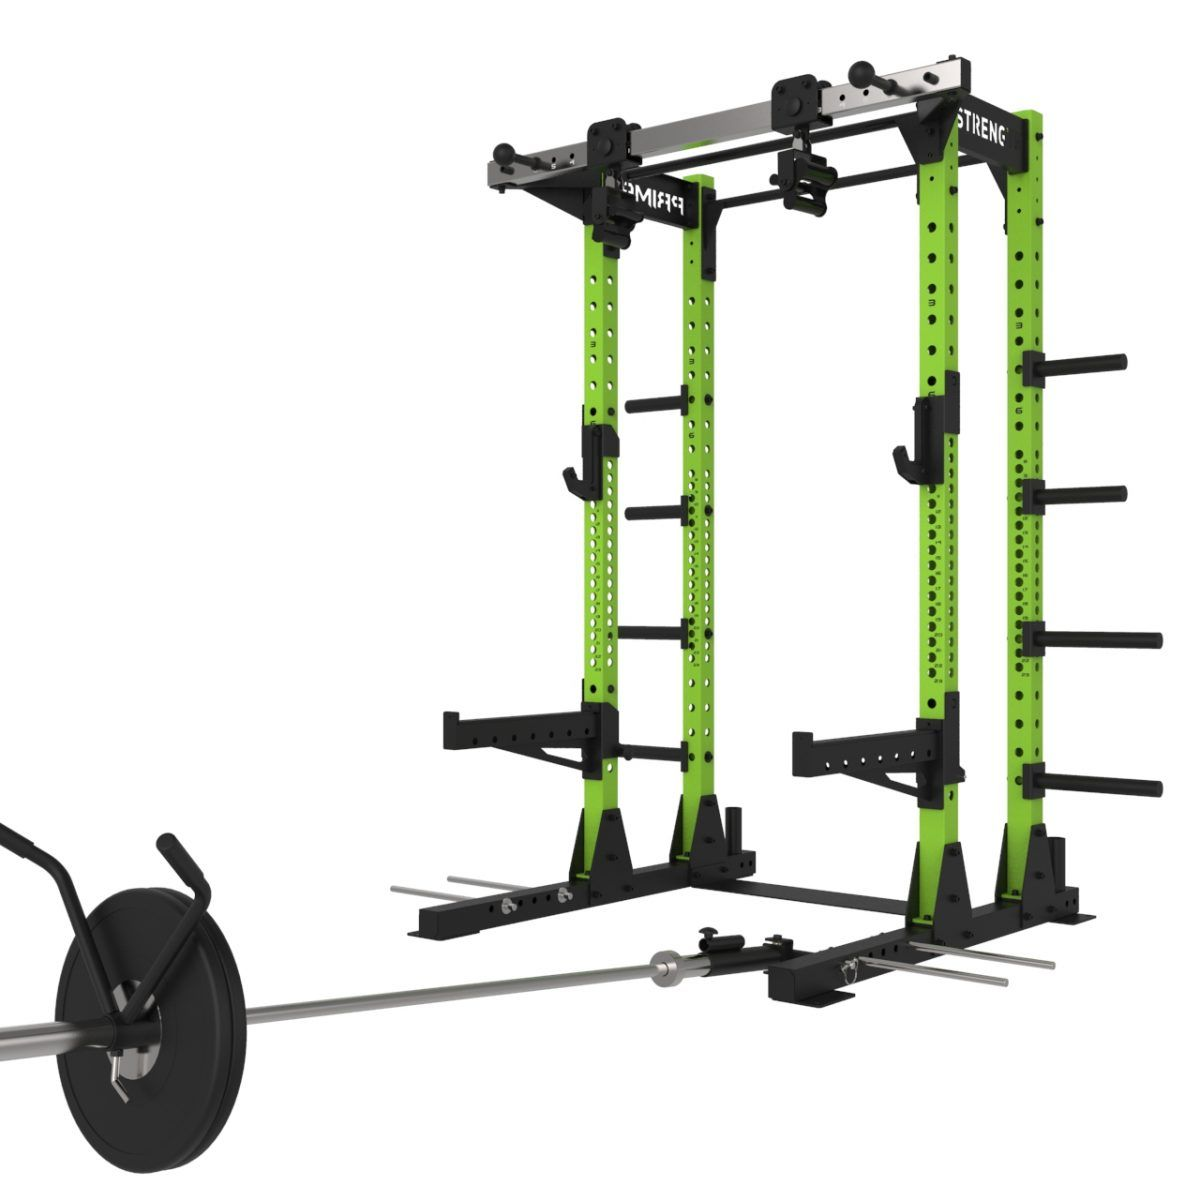 Benches and racks page 2 exercise equipment in 2020